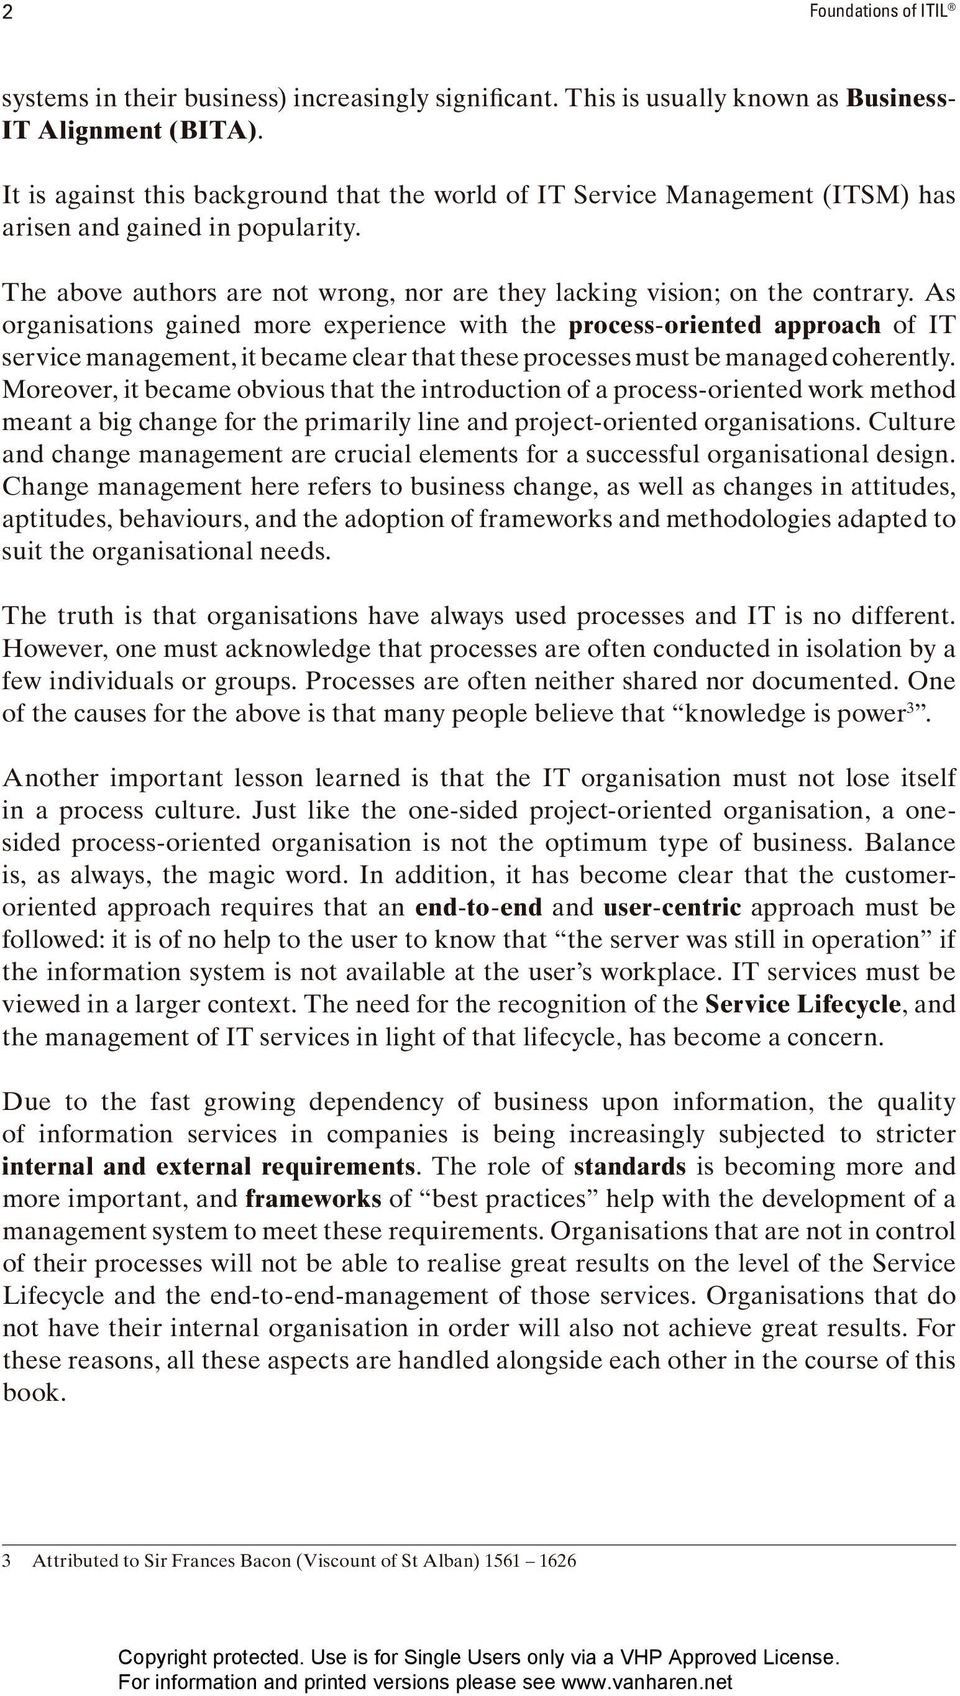 As organisations gained more experience with the process-oriented approach of IT service management, it became clear that these processes must be managed coherently.